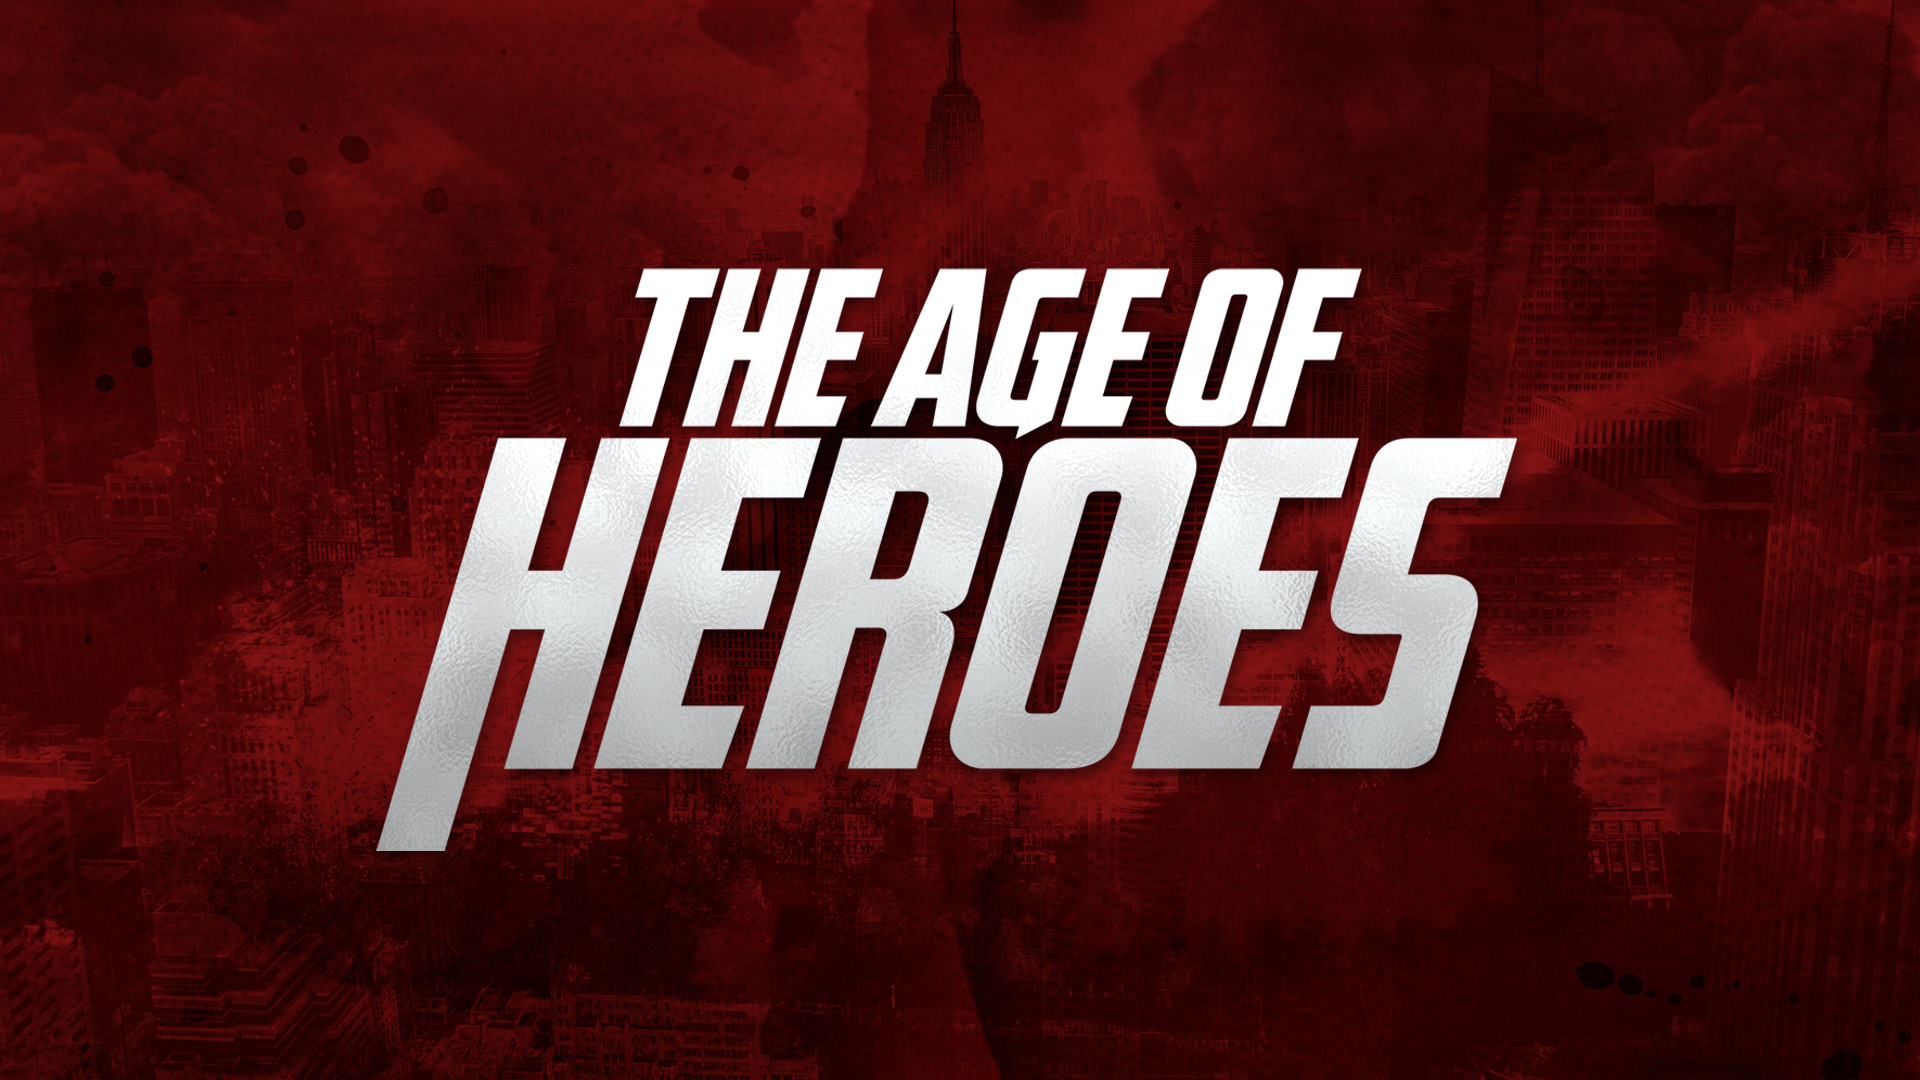 the_age_of_heroes-title-1-Wide 16x9.jpg